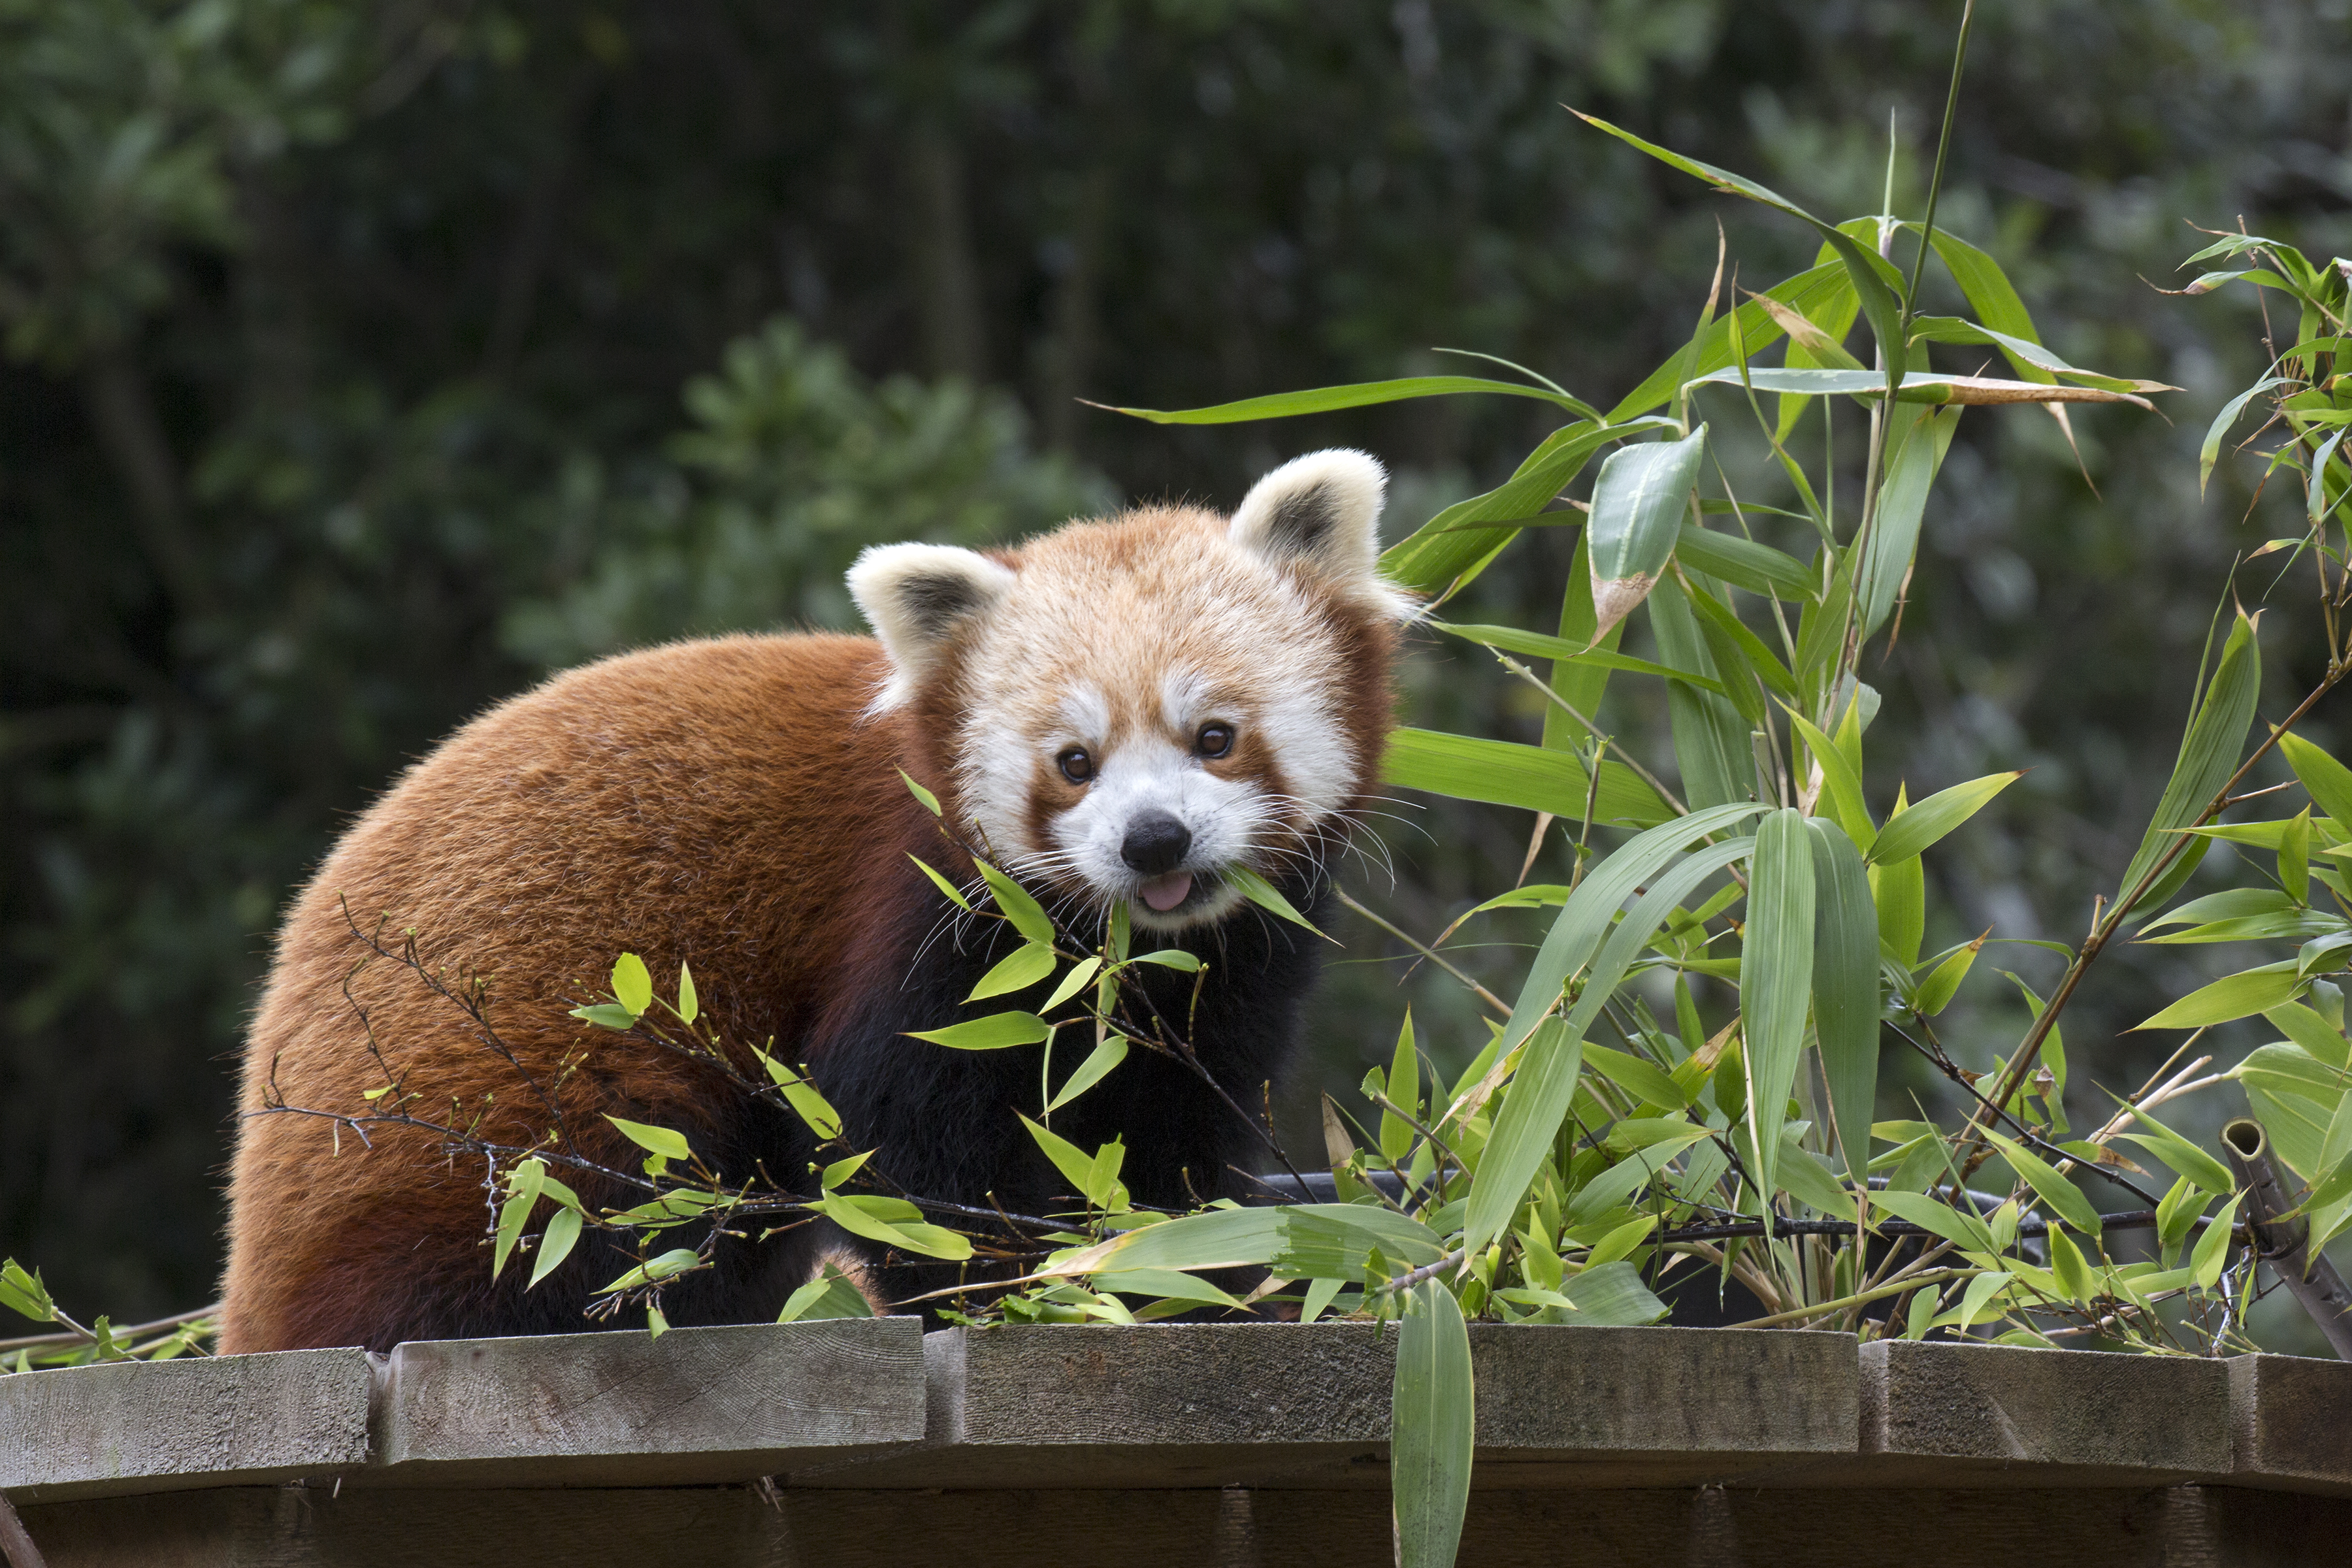 A live stream of the red panda enclosure at the San Francisco Zoo will be on display during Election Day (Nov. 7, 2016).